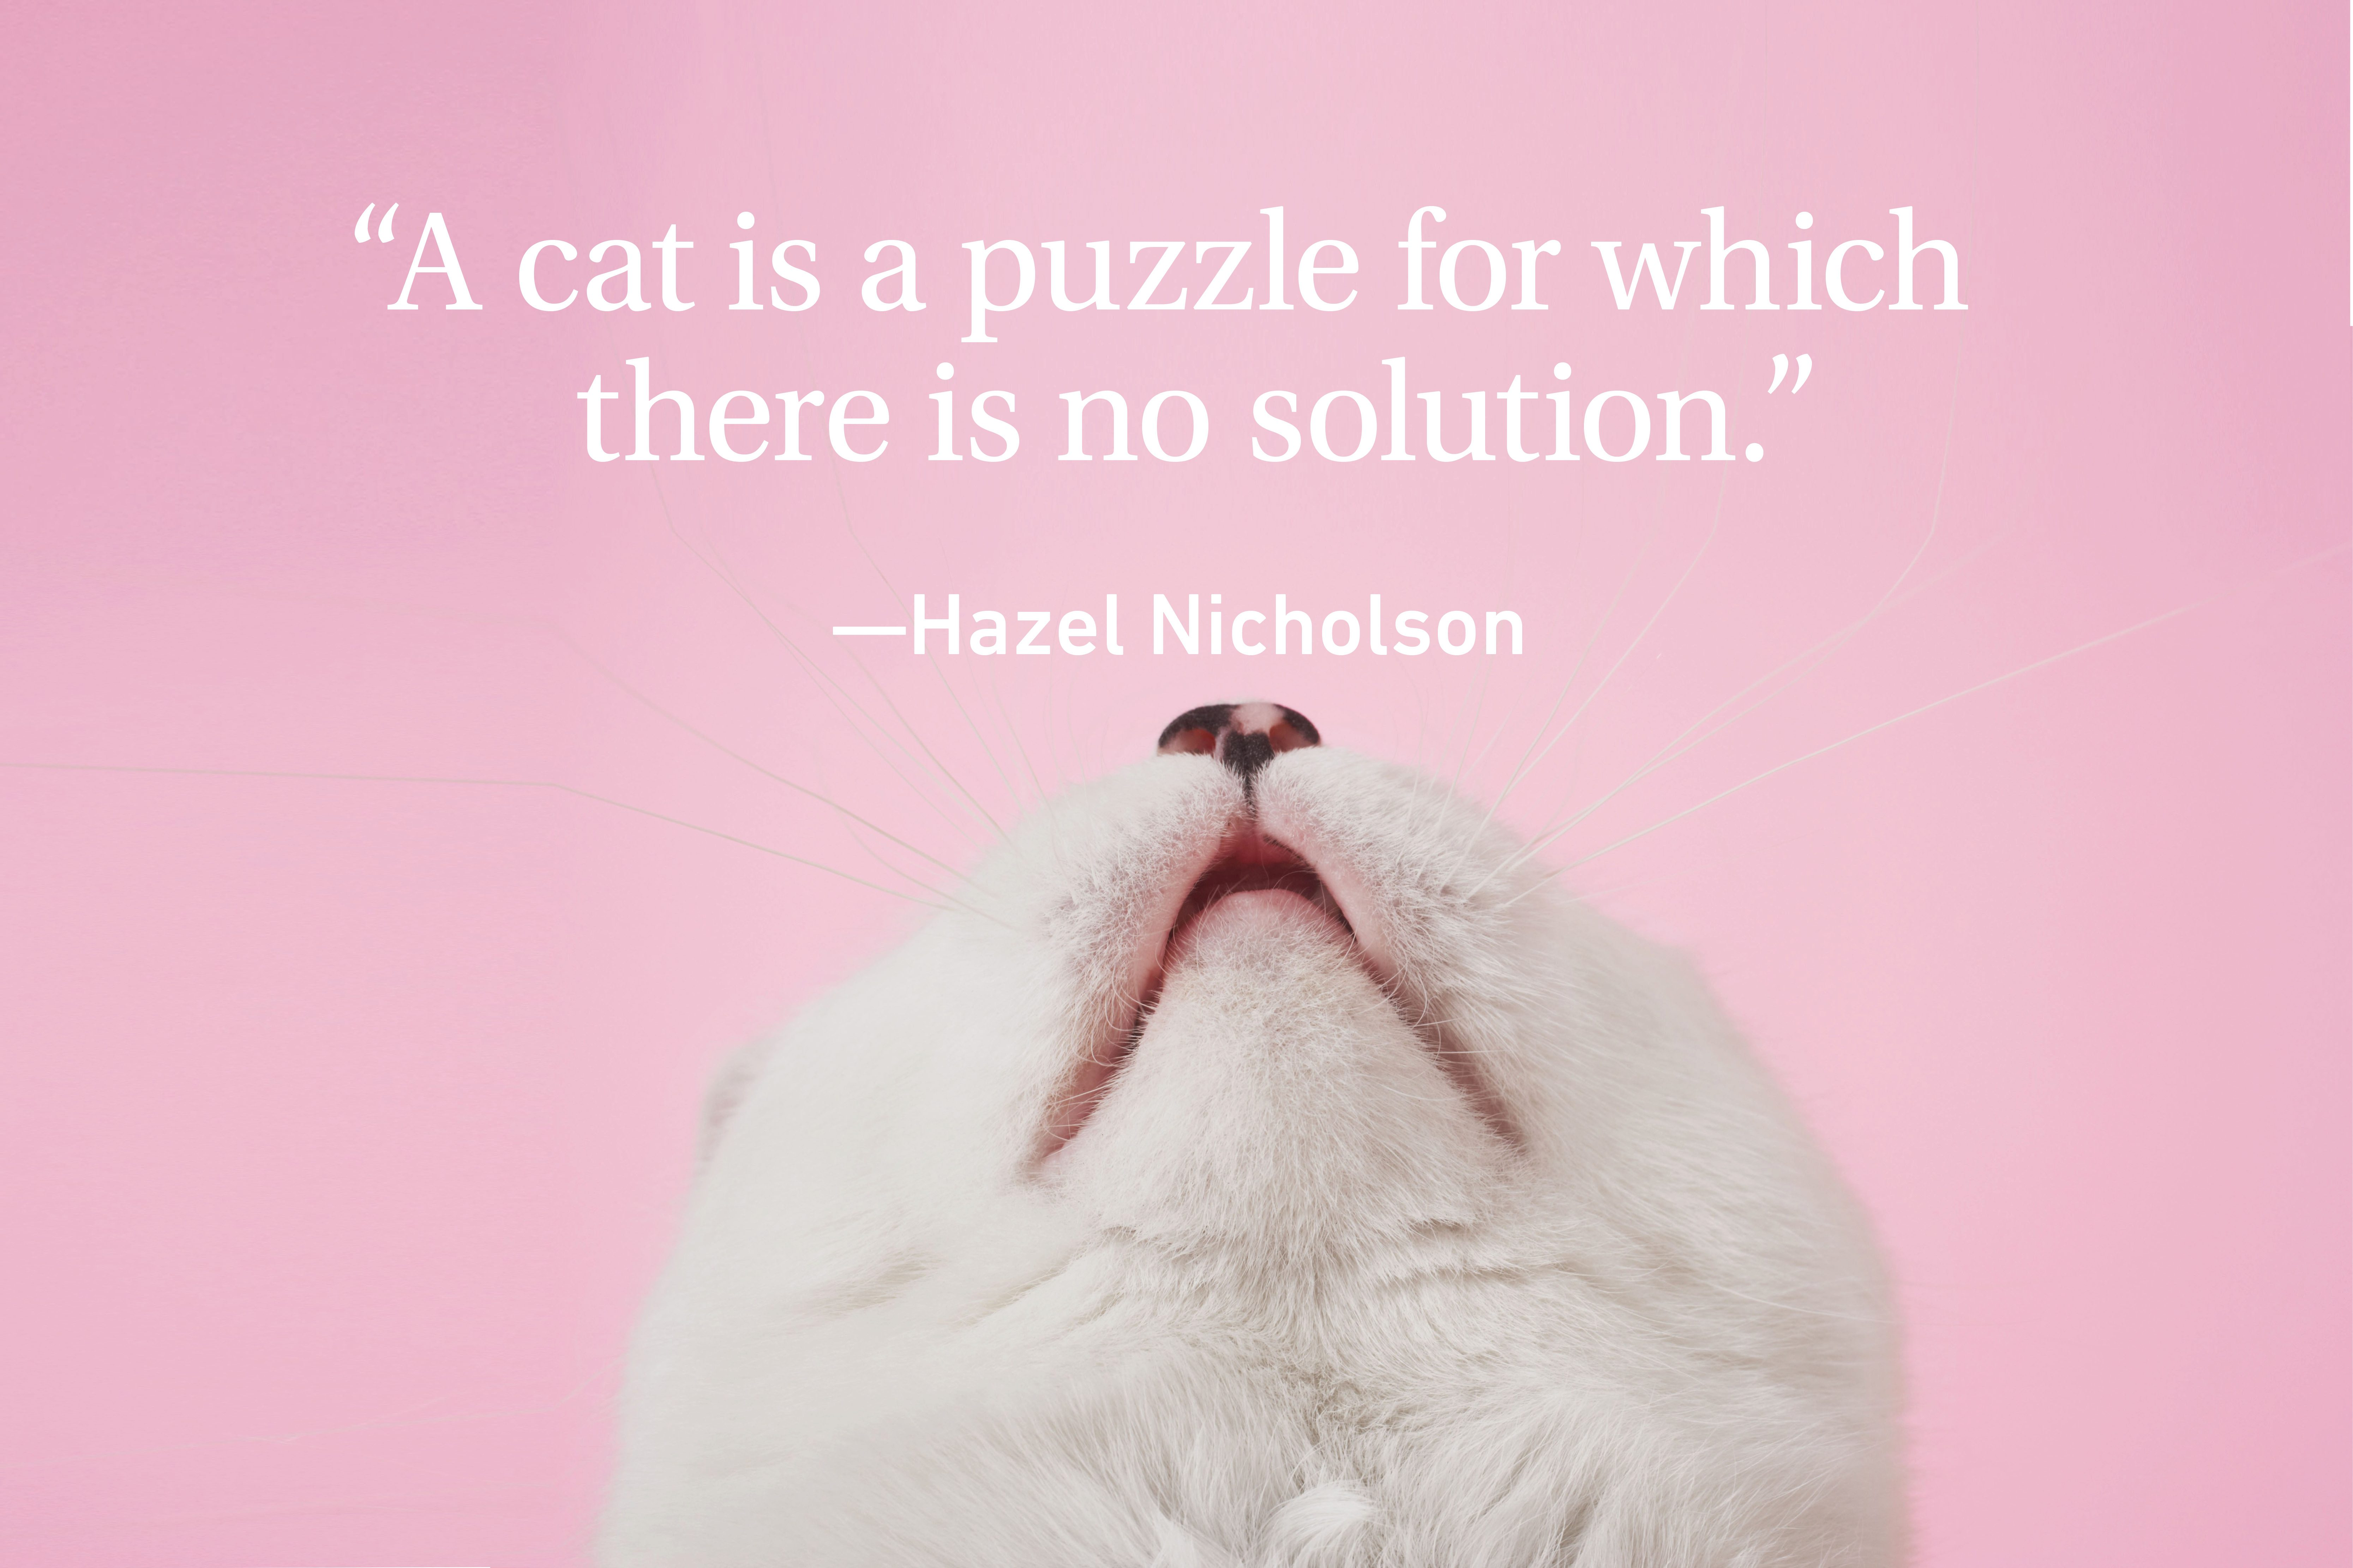 Cat face on pink background with a quote above